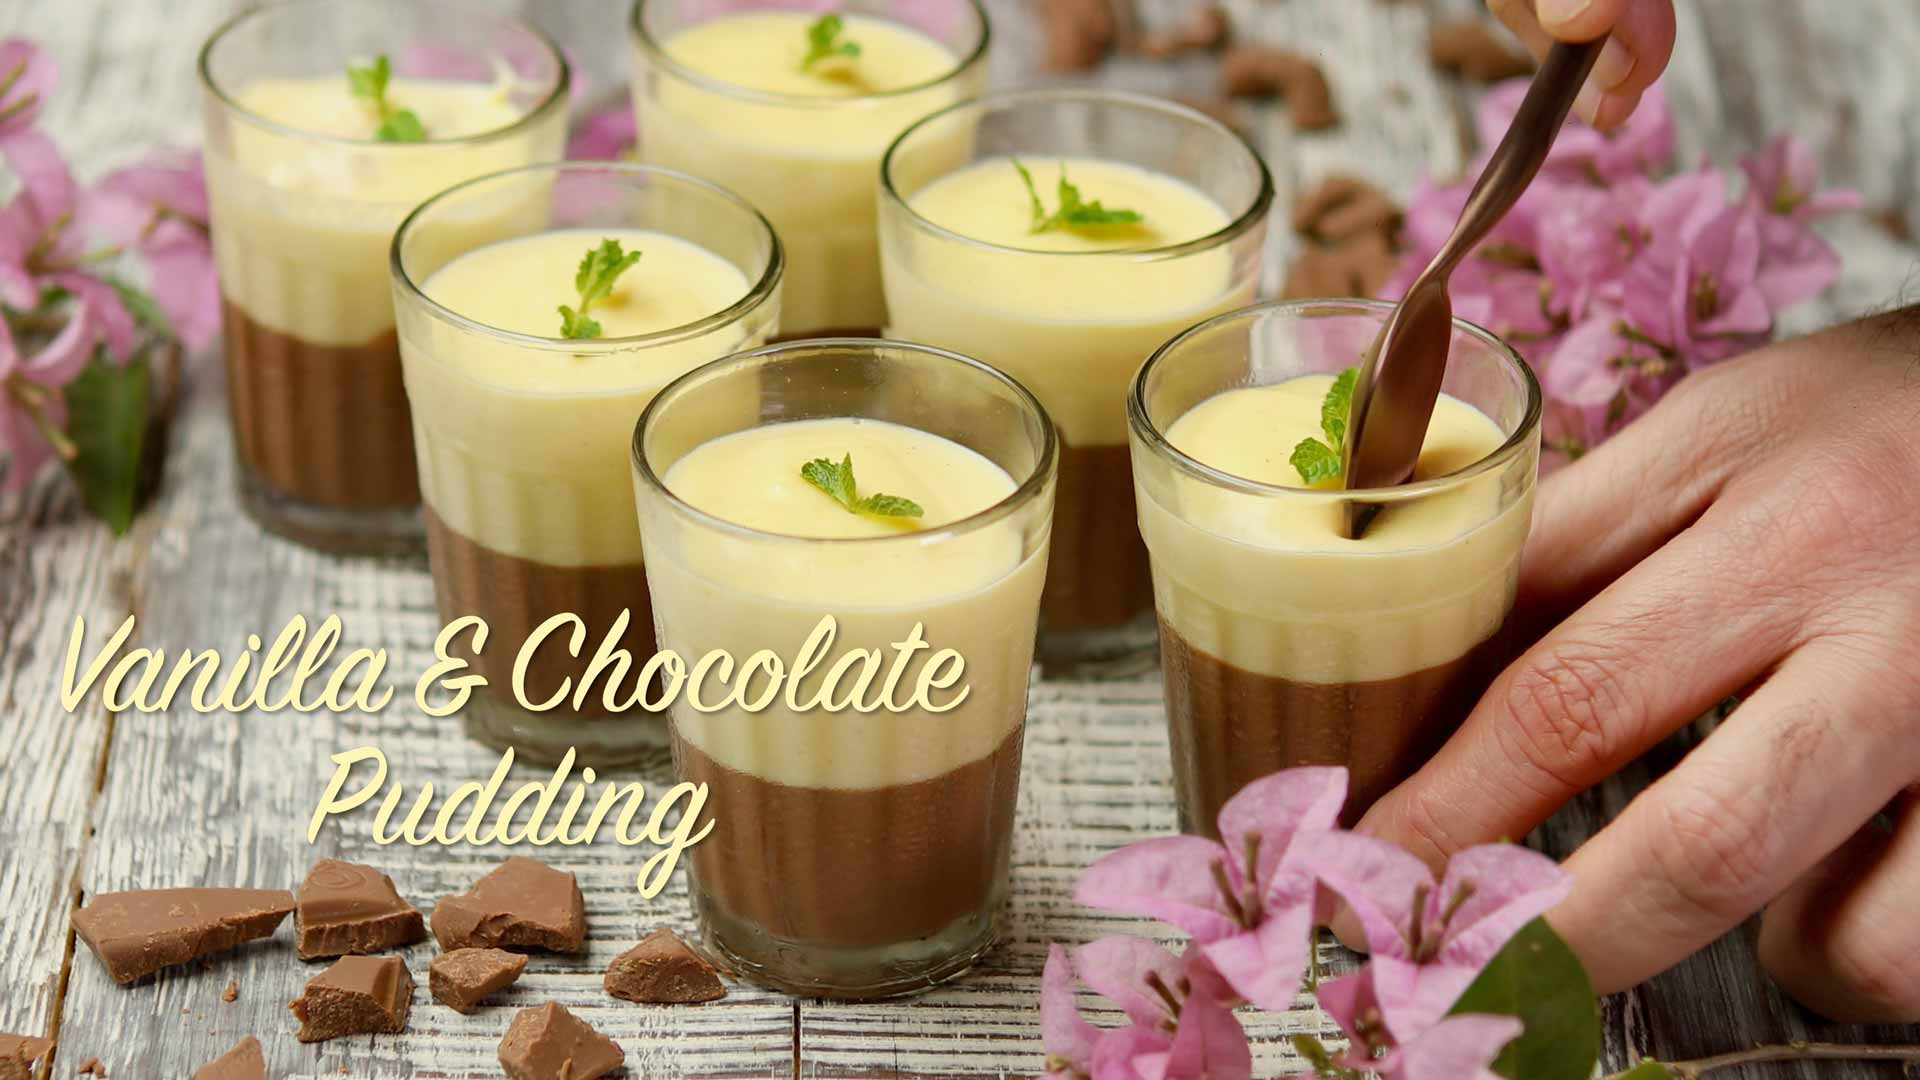 Vanilla and Chocolate Pudding Recipe | How to Make Vanilla Chocolate Pudding